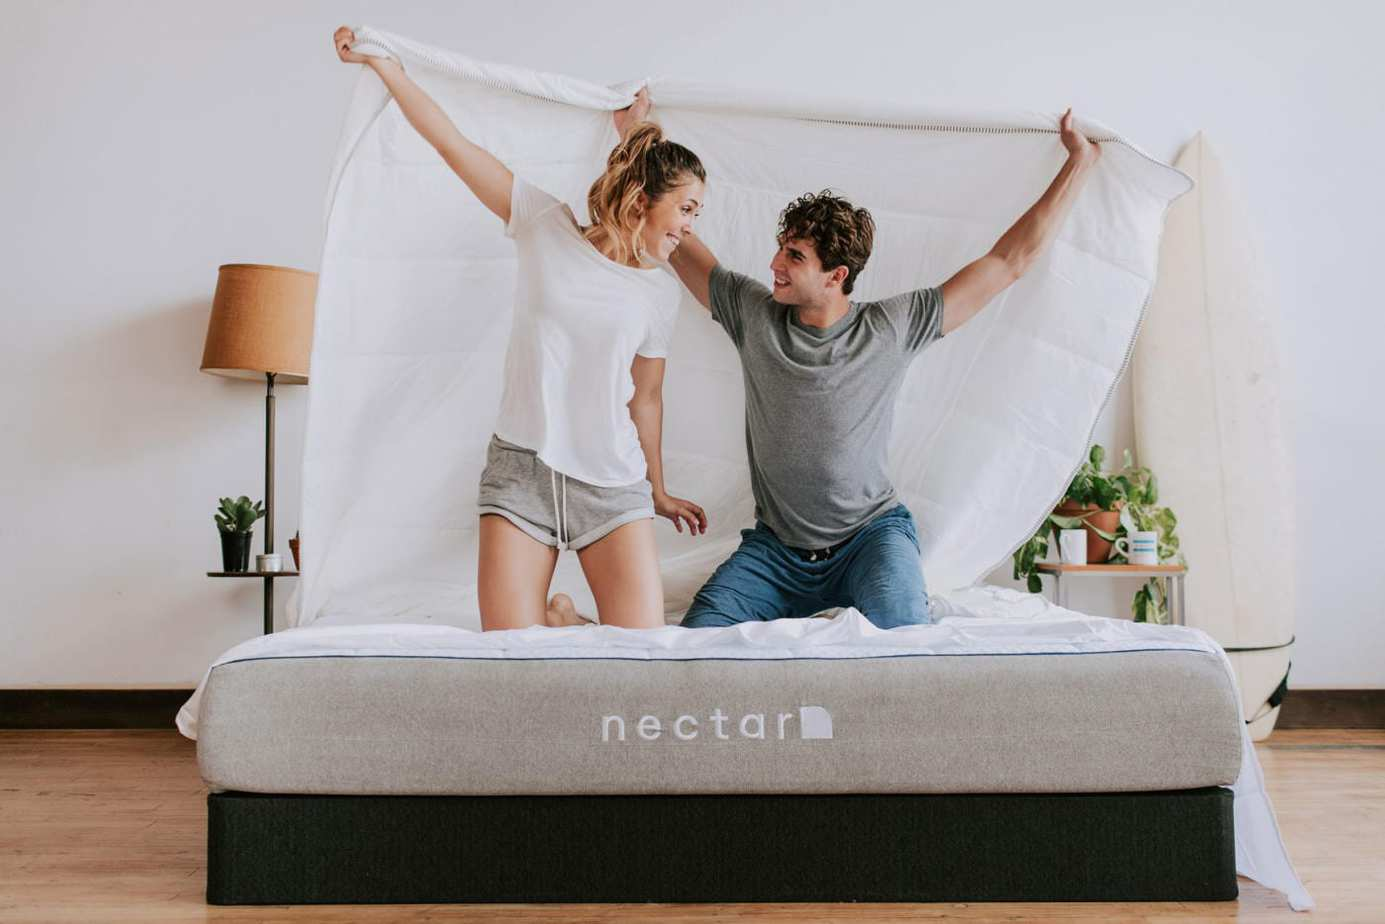 Why Everyone Is Talking About Nectar Mattresses.